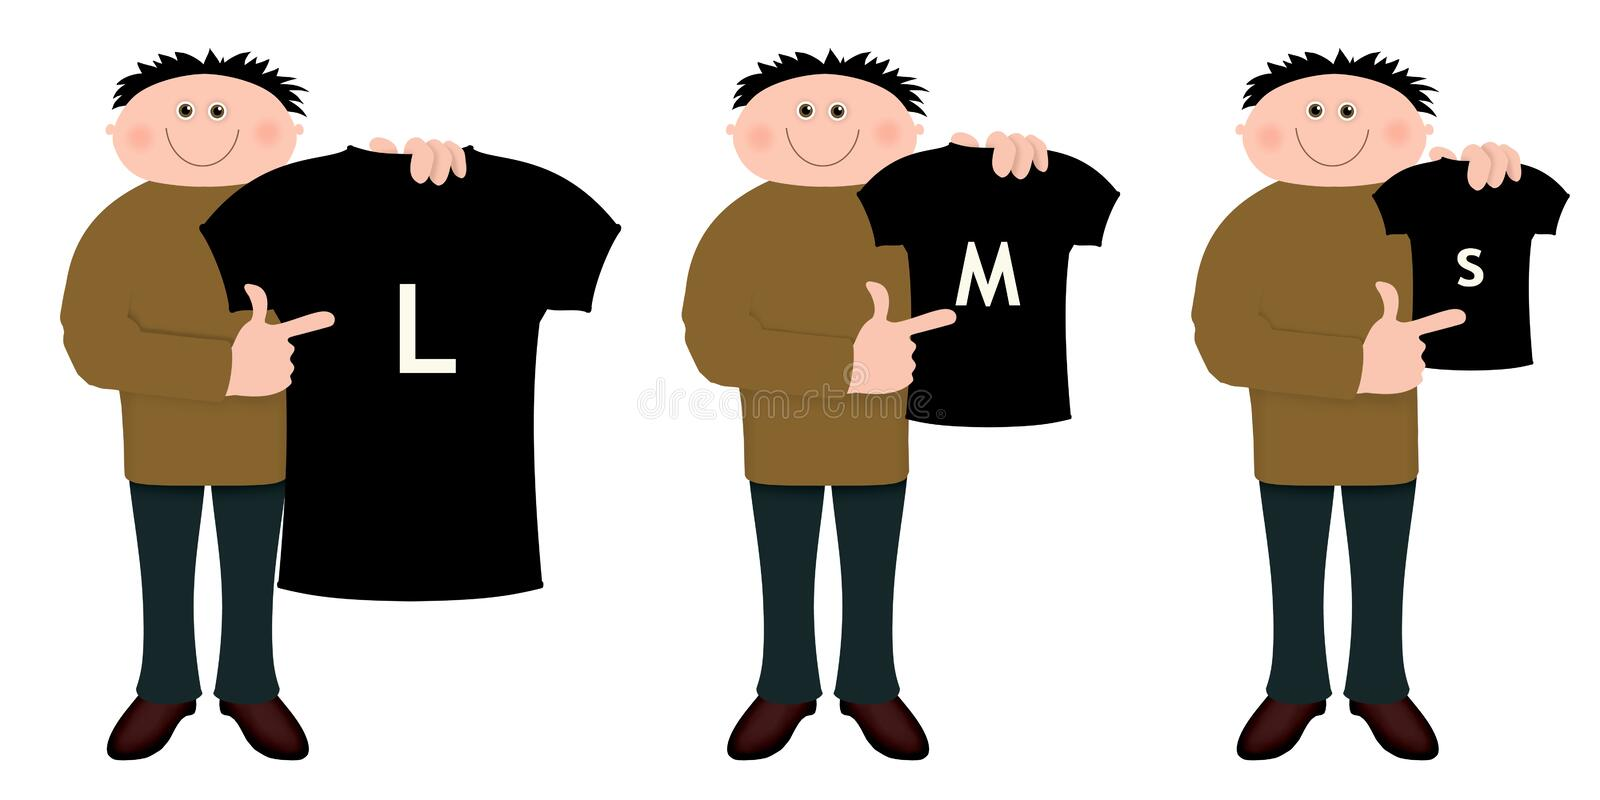 Shirt sizes royalty free stock photos